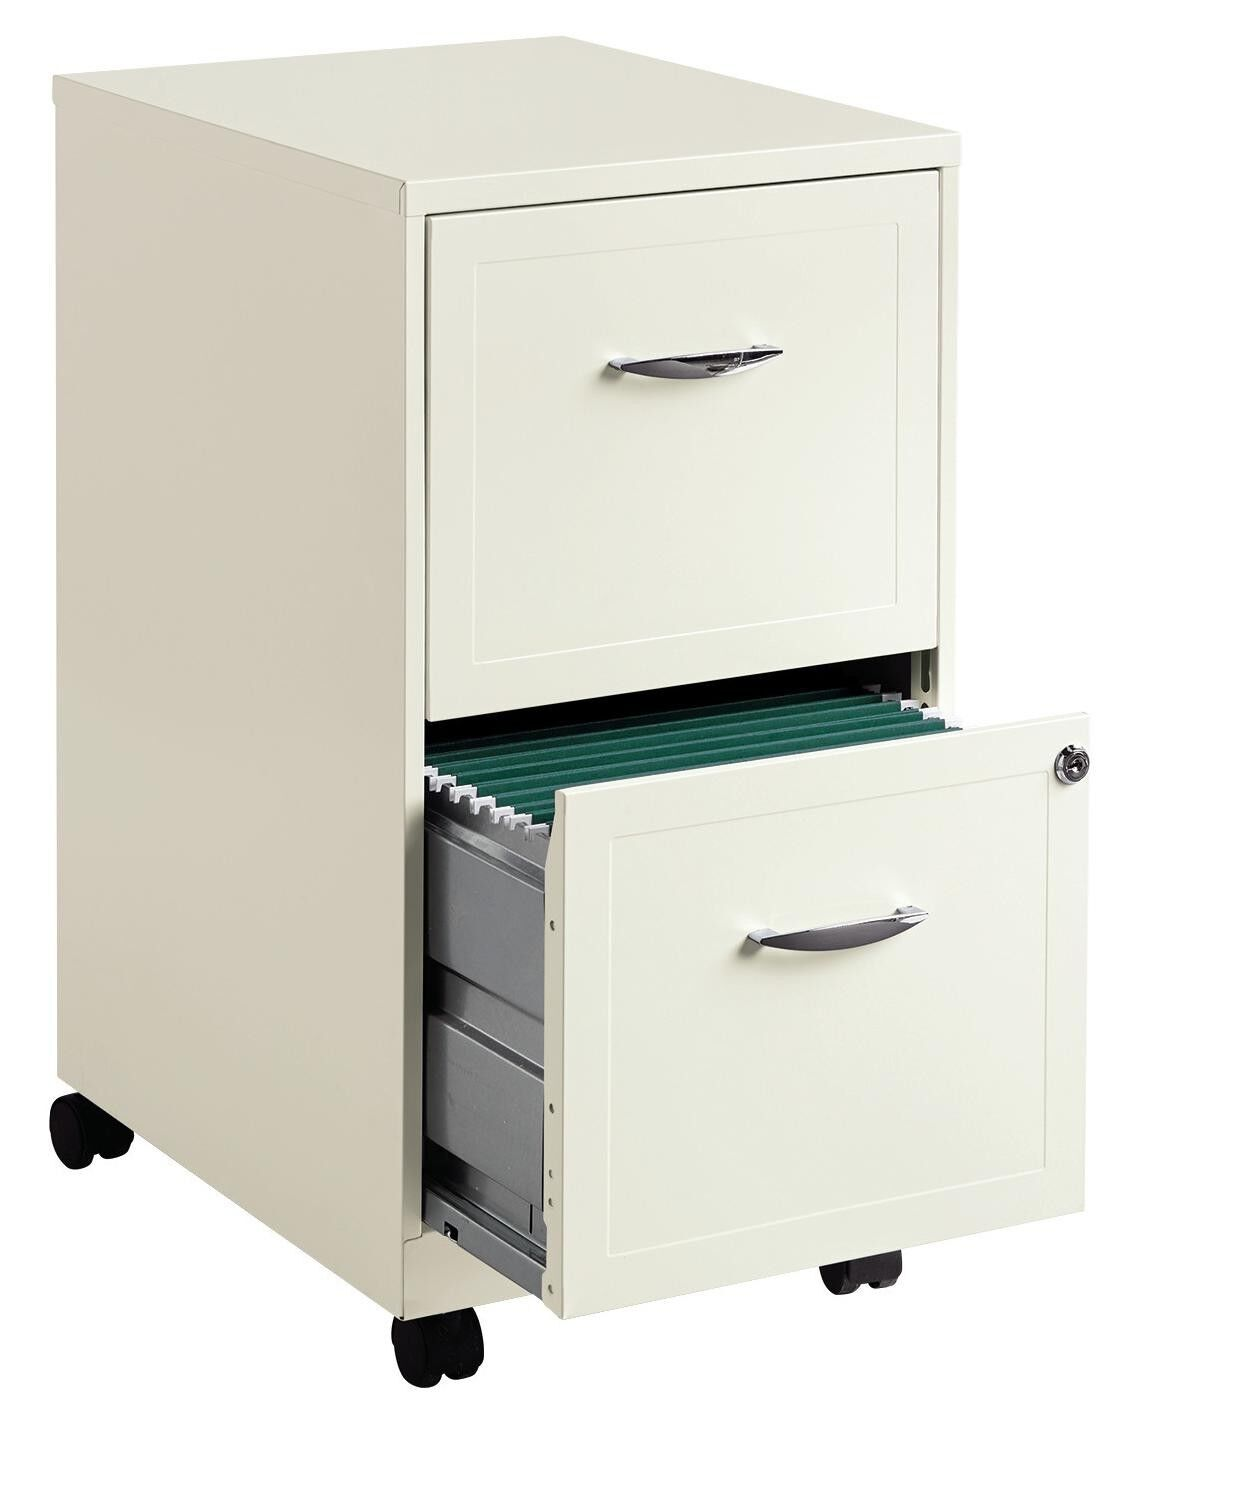 NEW 18  Deep 2 DRAWER MOBILE LETTER SIZE File Cabinet - color  Pearl White